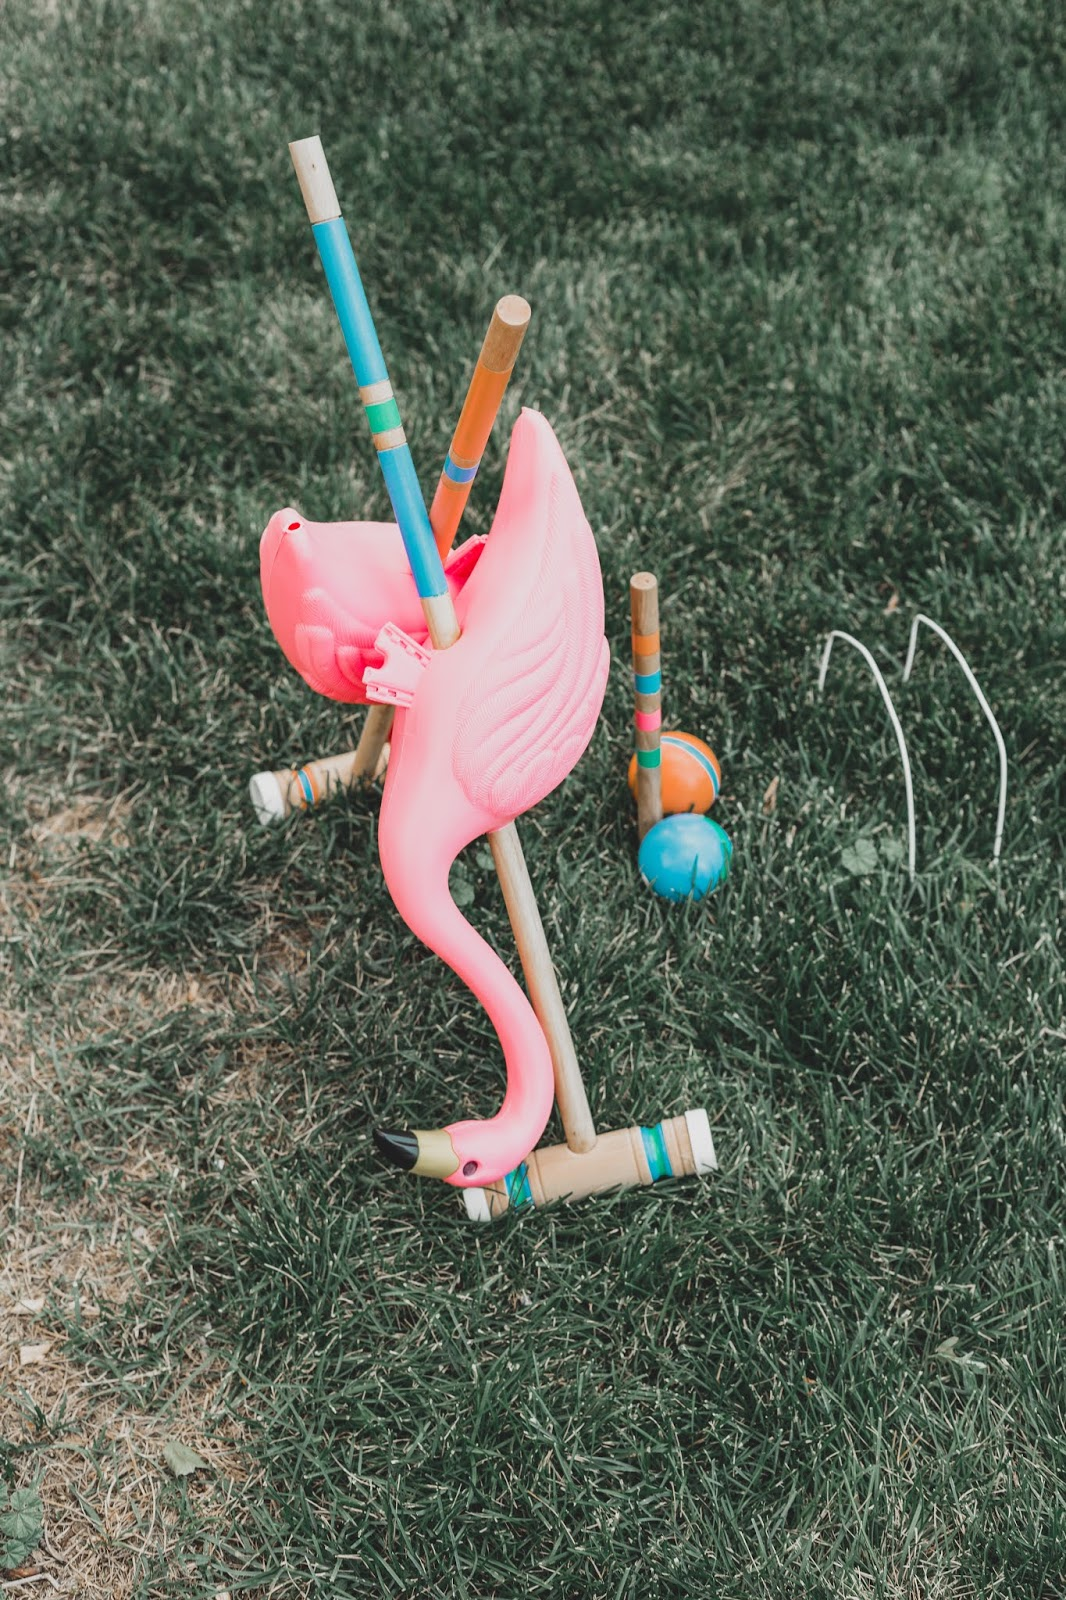 flamingo croquet set